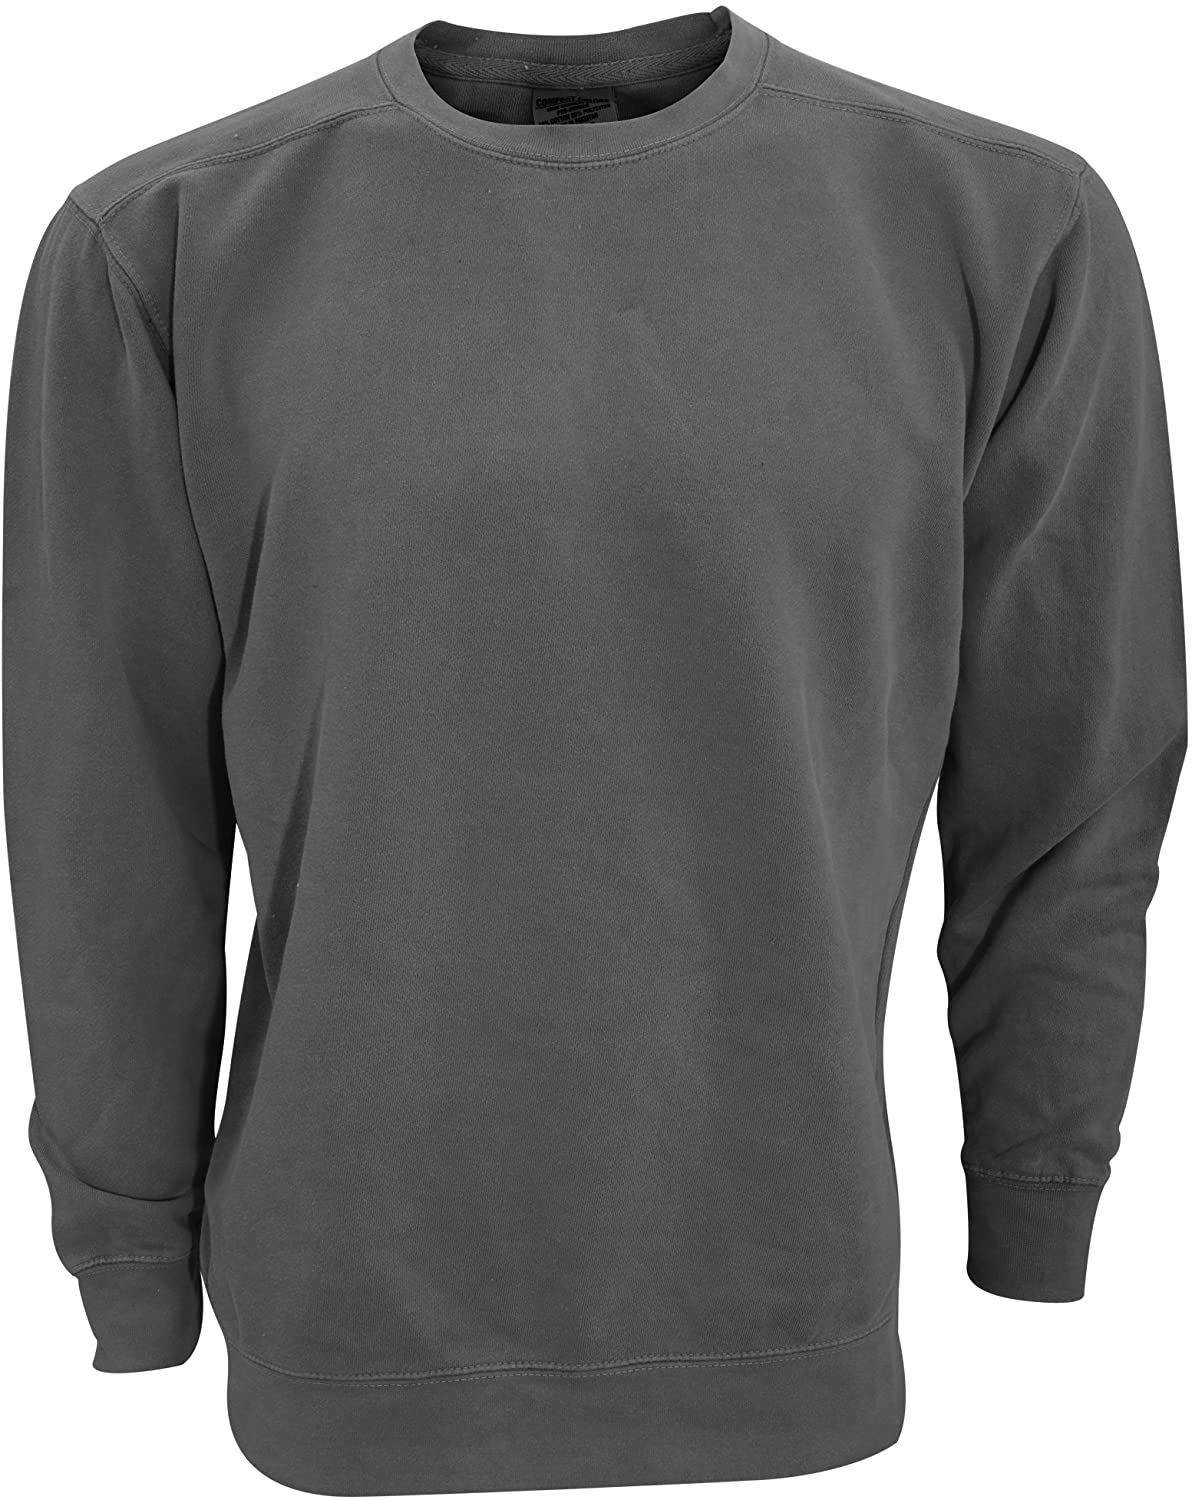 Comfort Colors Adults Unisex Crew Neck Sweatshirt, Graphite, XX-Large